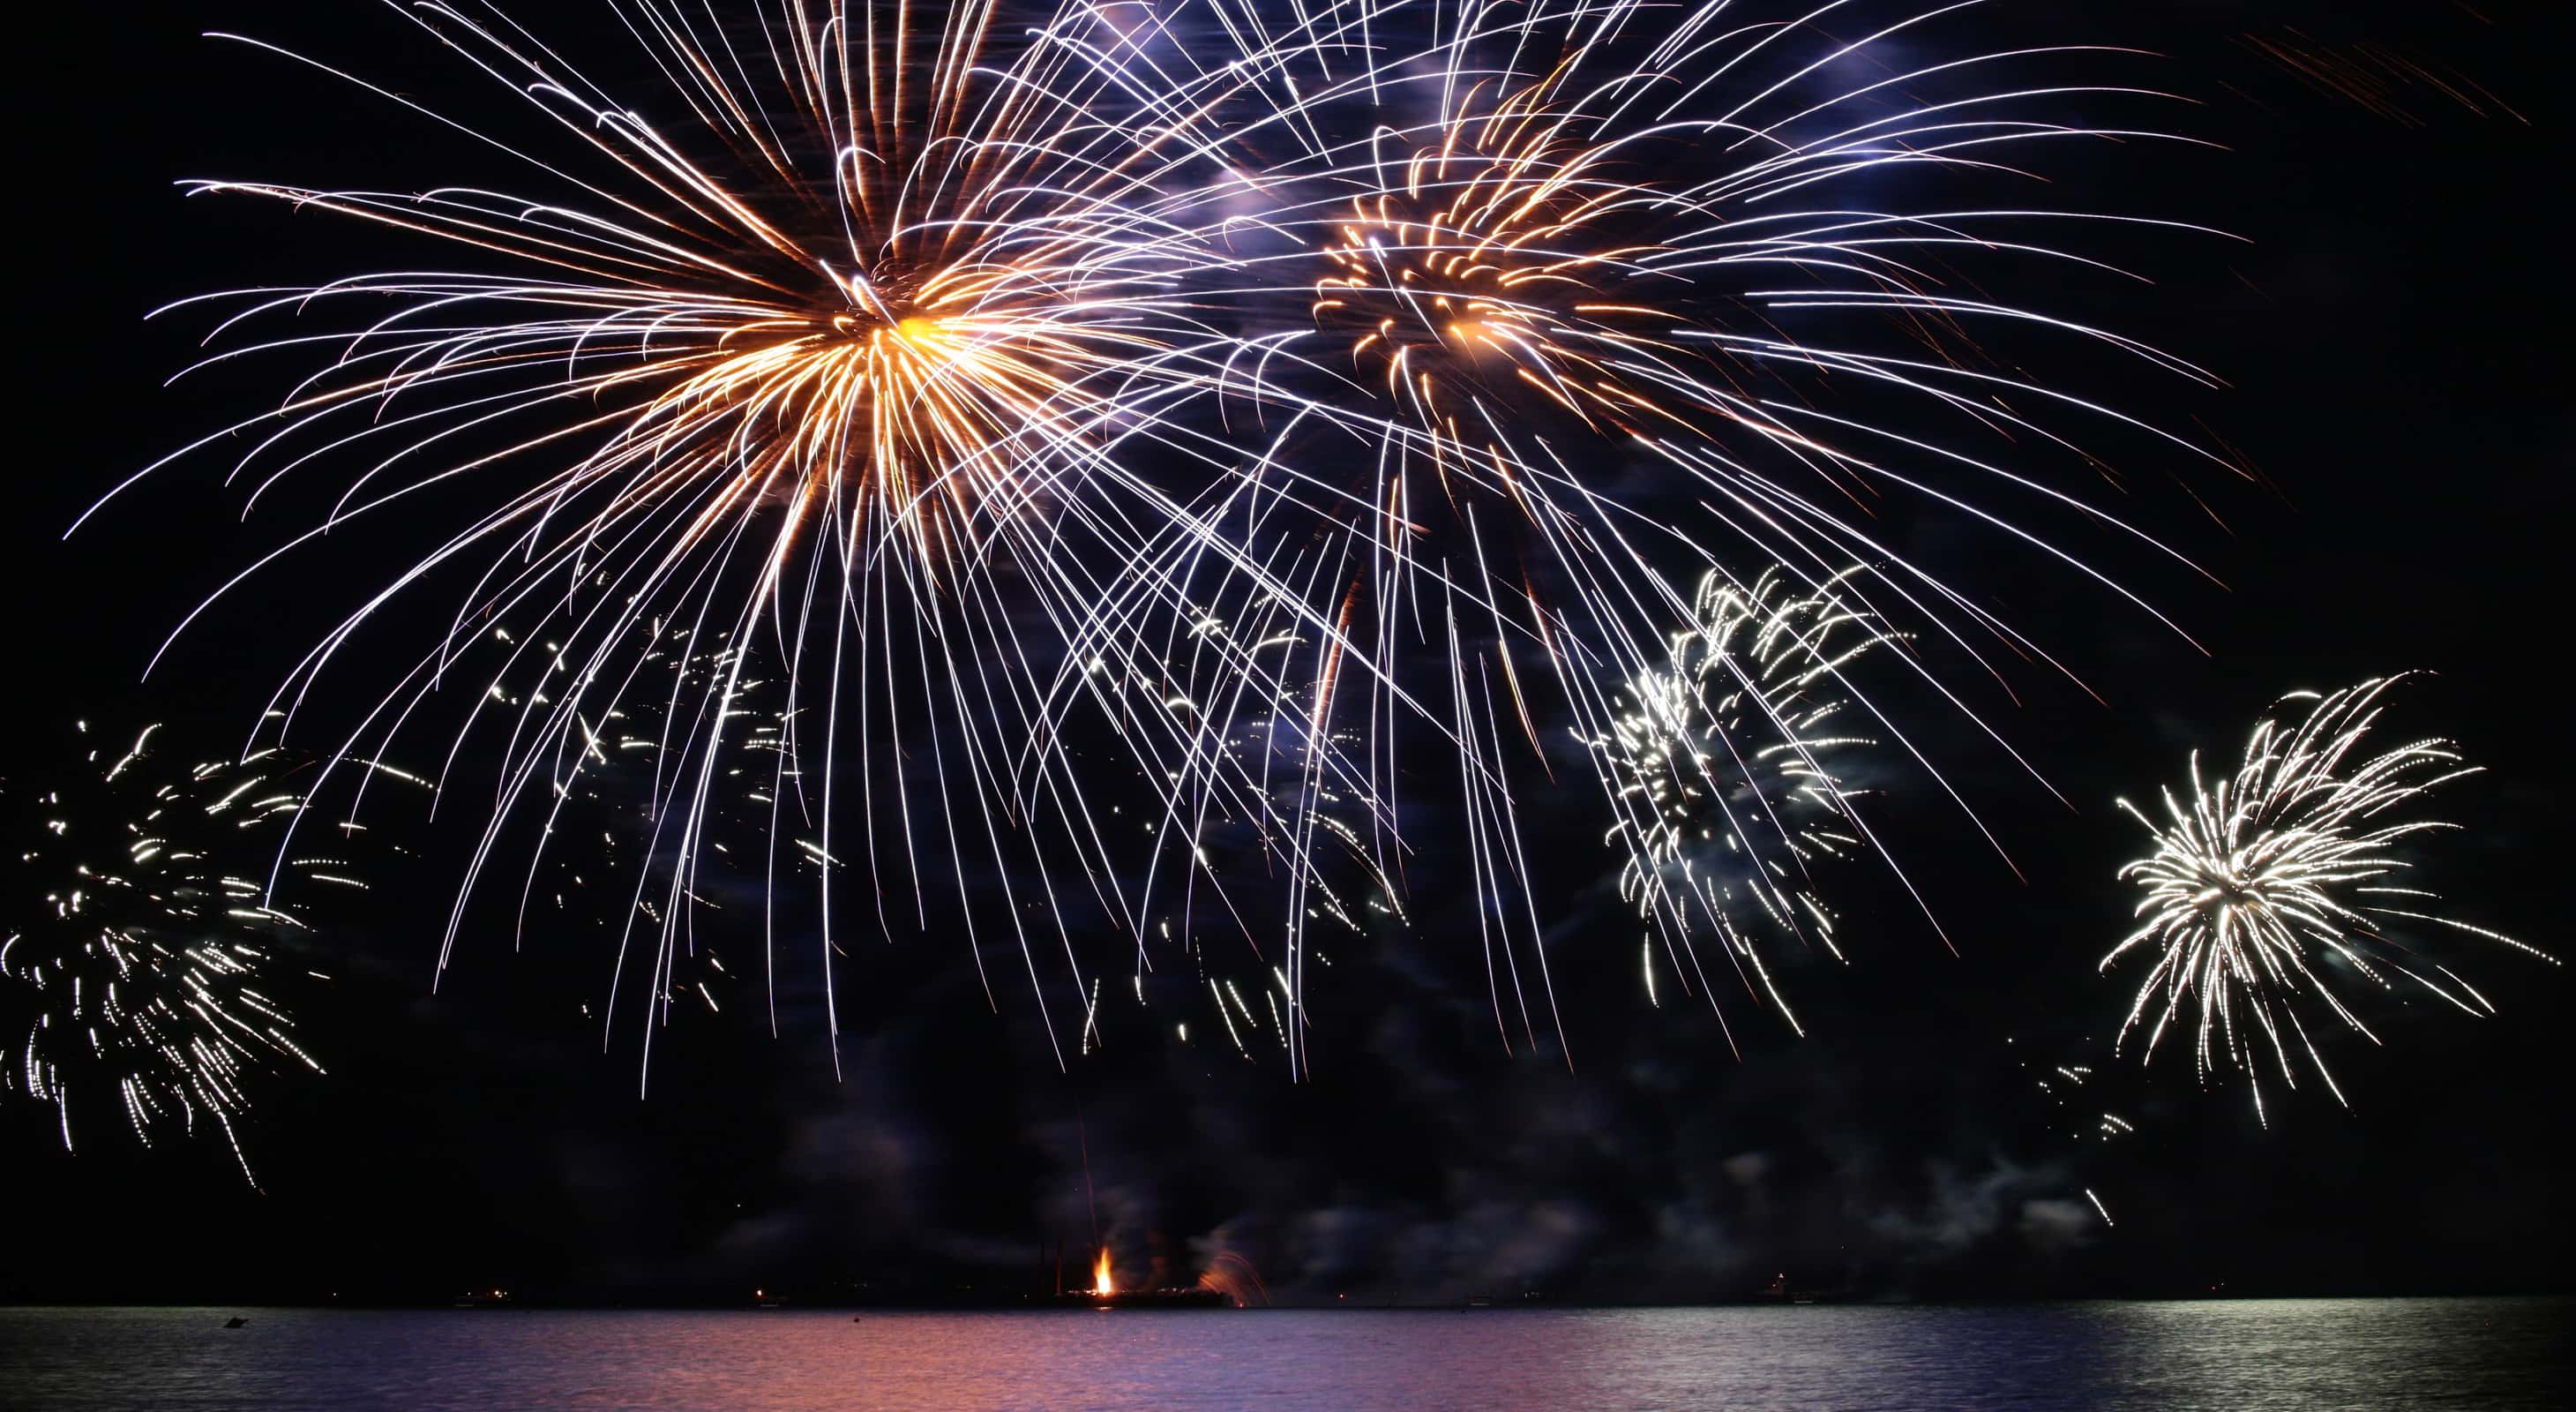 Fireworks, an exciting DownEast Maine event